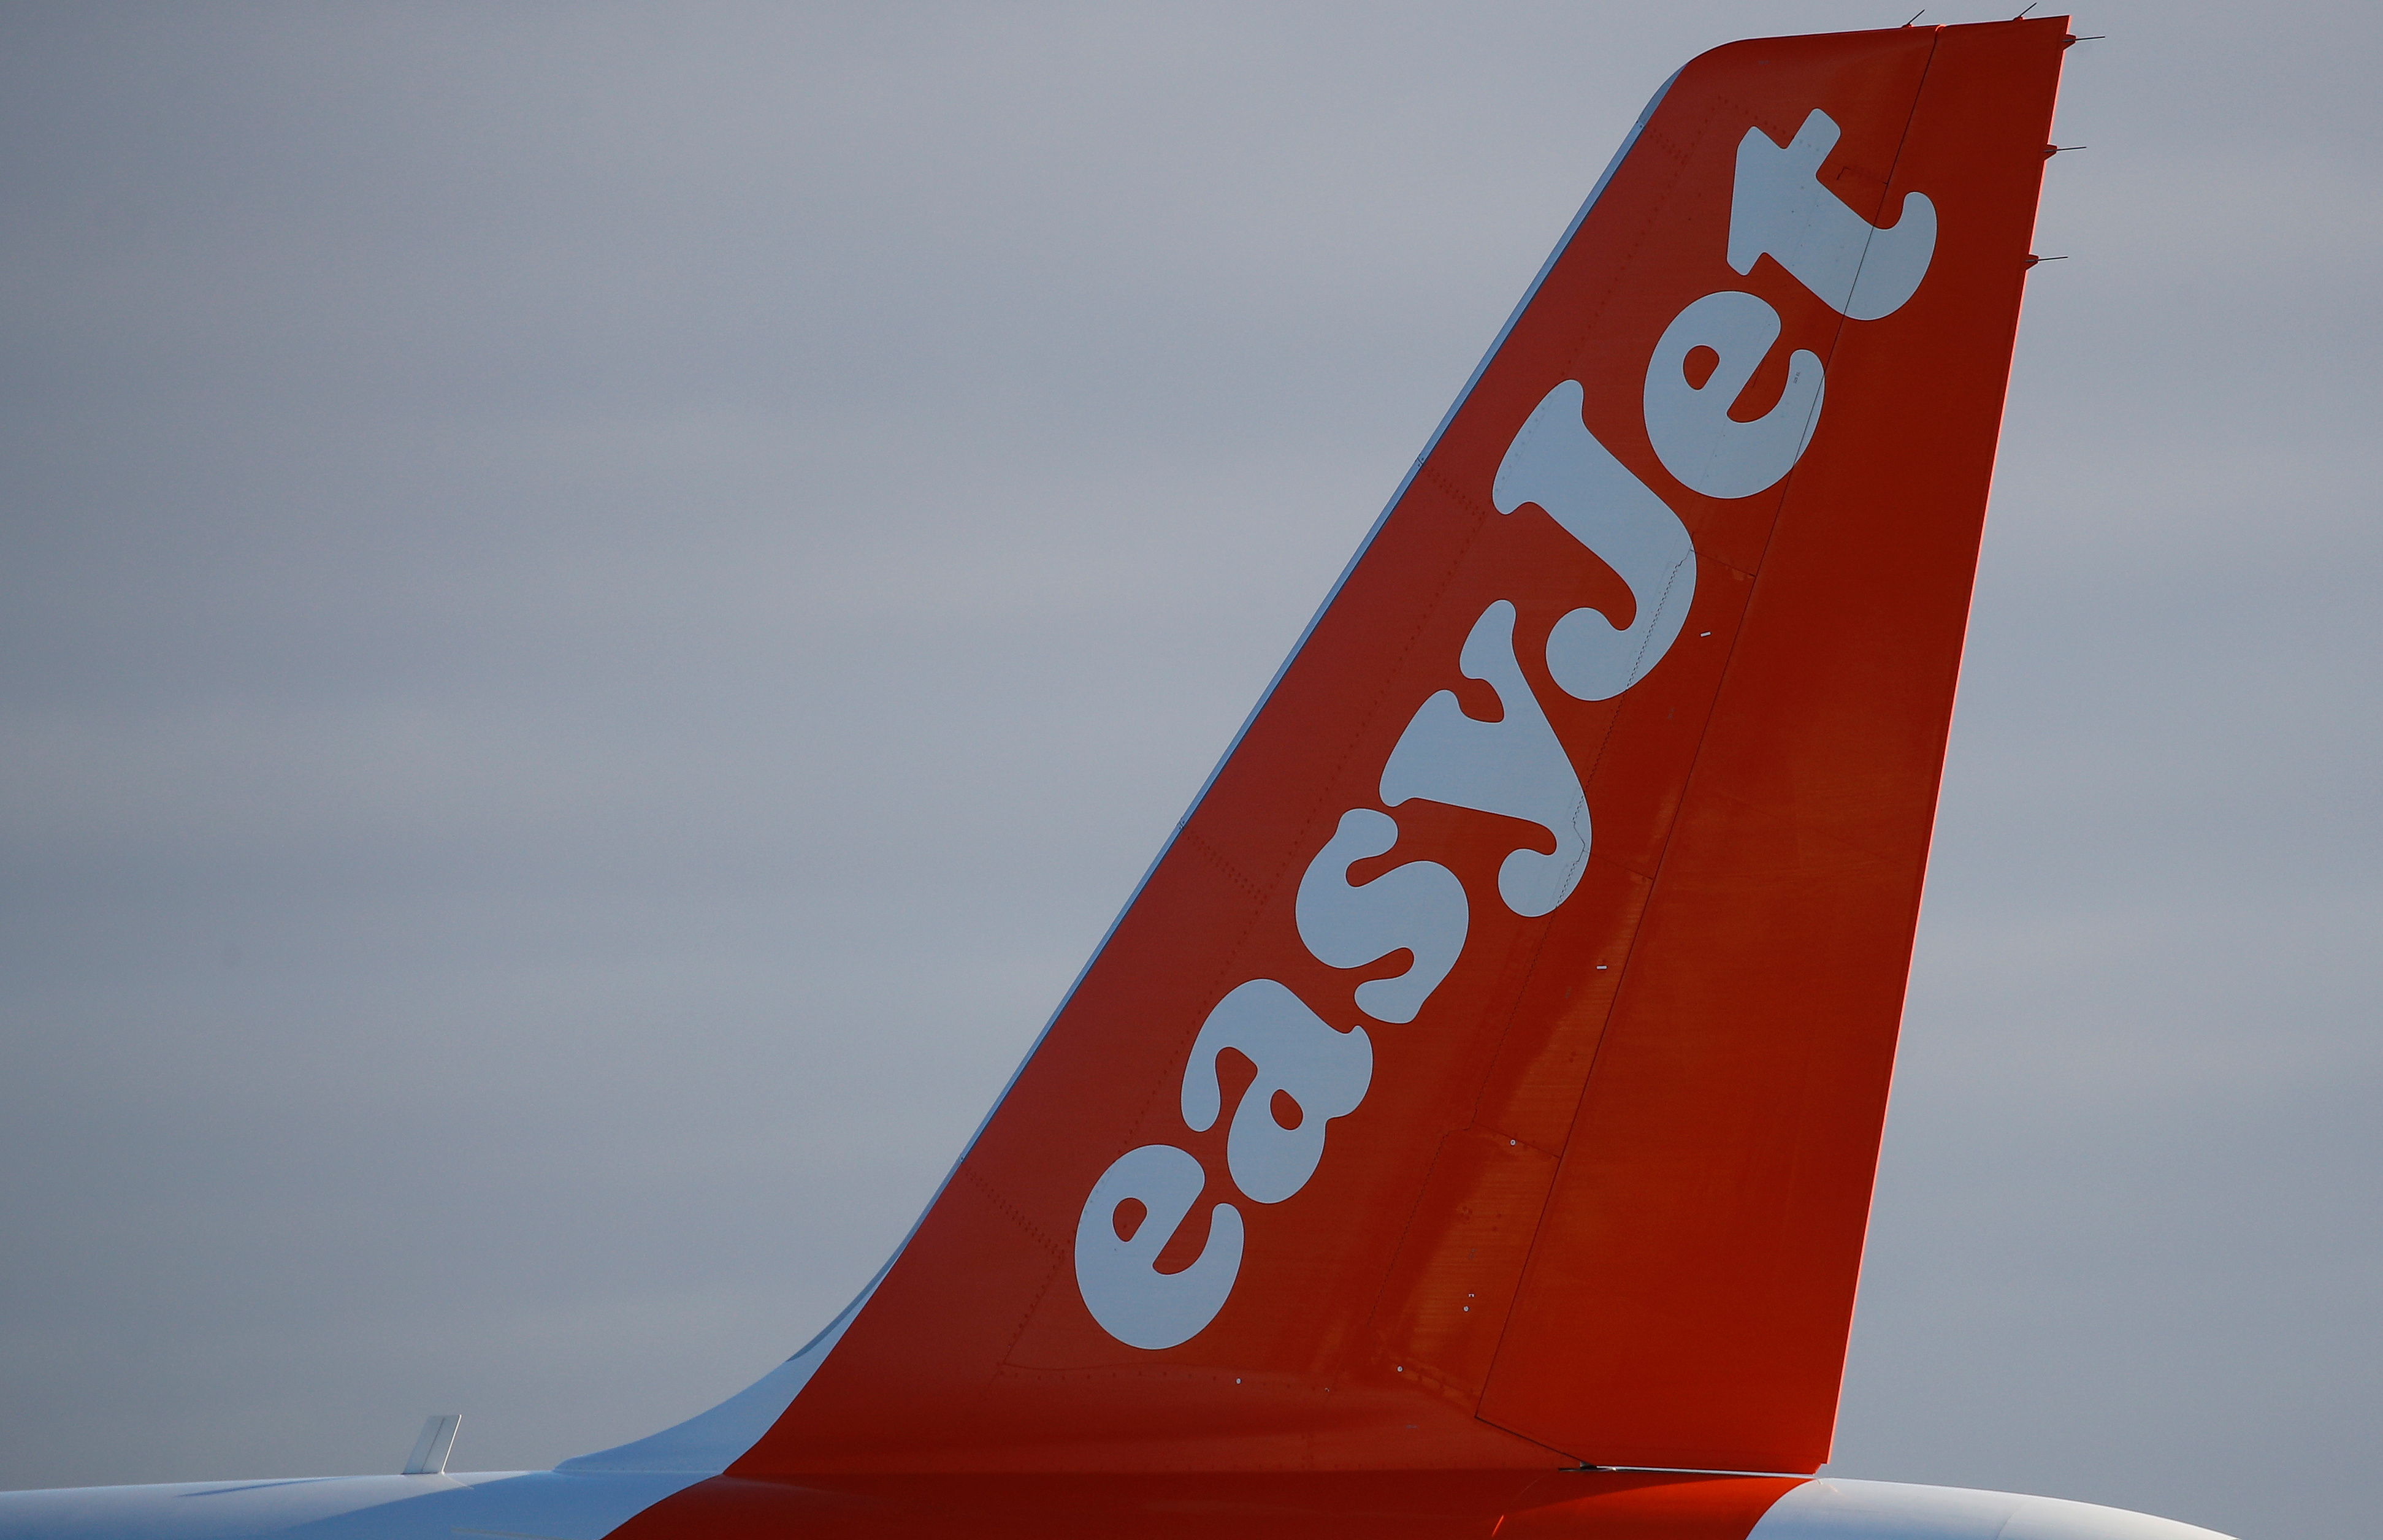 The company logo is seen on the tail of an Easyjet plane at Manchester Airport in Manchester, Britain January 20, 2020. REUTERS/Phil Noble